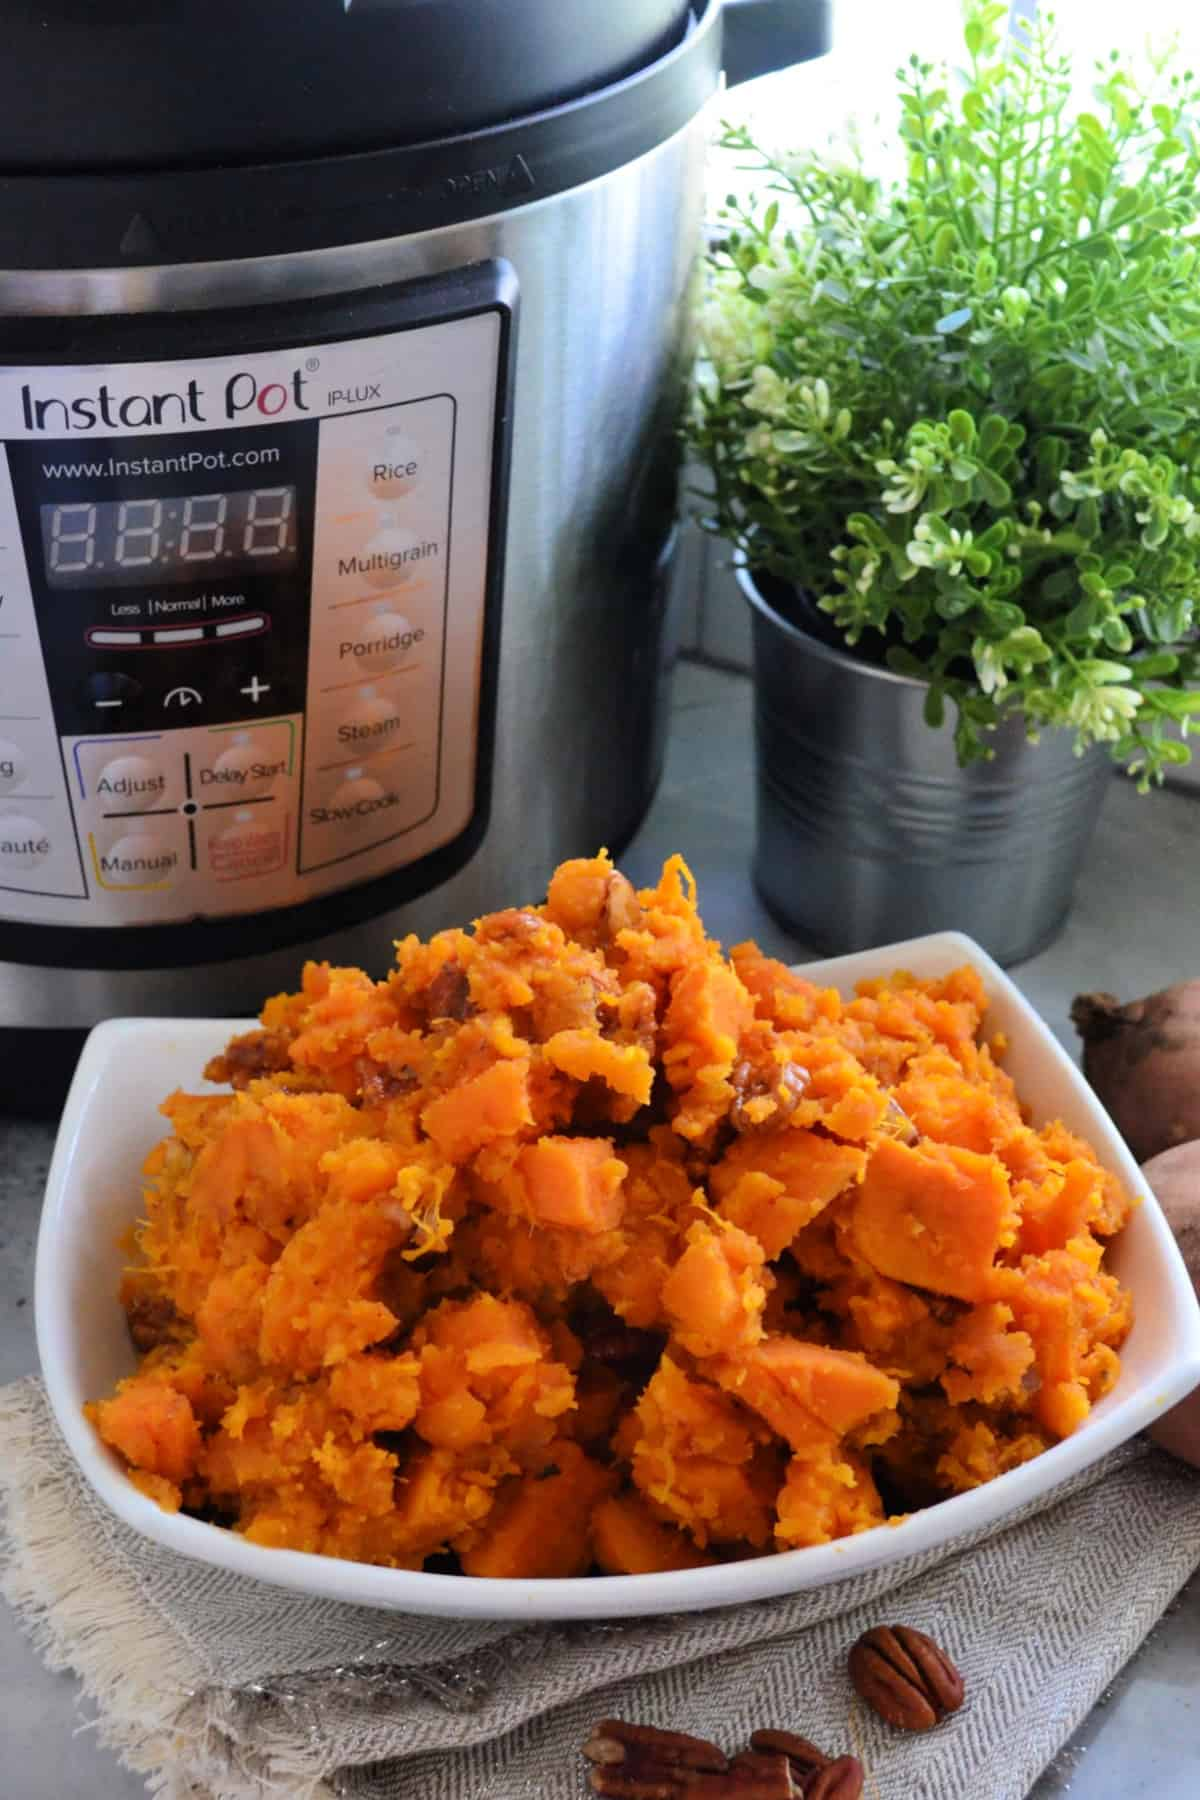 Dish of sweet potatoes near pecans in front of instant pot.